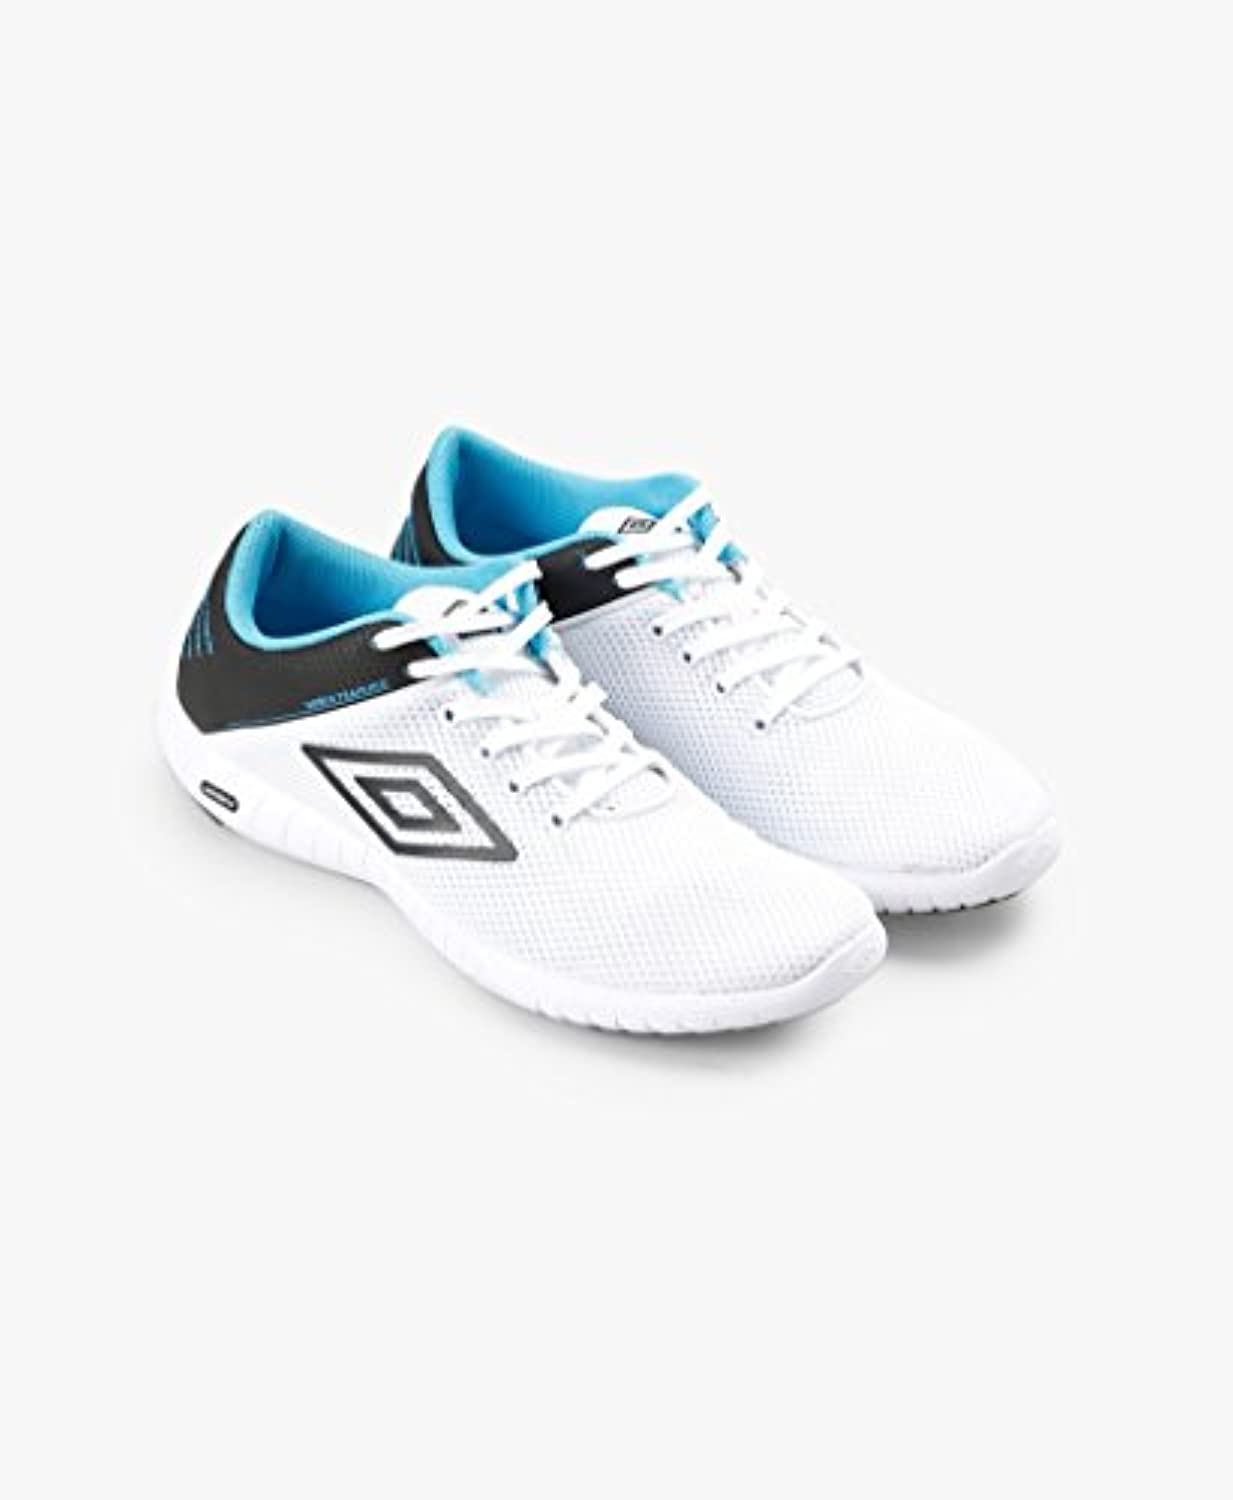 Umbro Herren Runner 4 Football Pferdeschuhe  White/Black/Bluebird  Size UK10.5